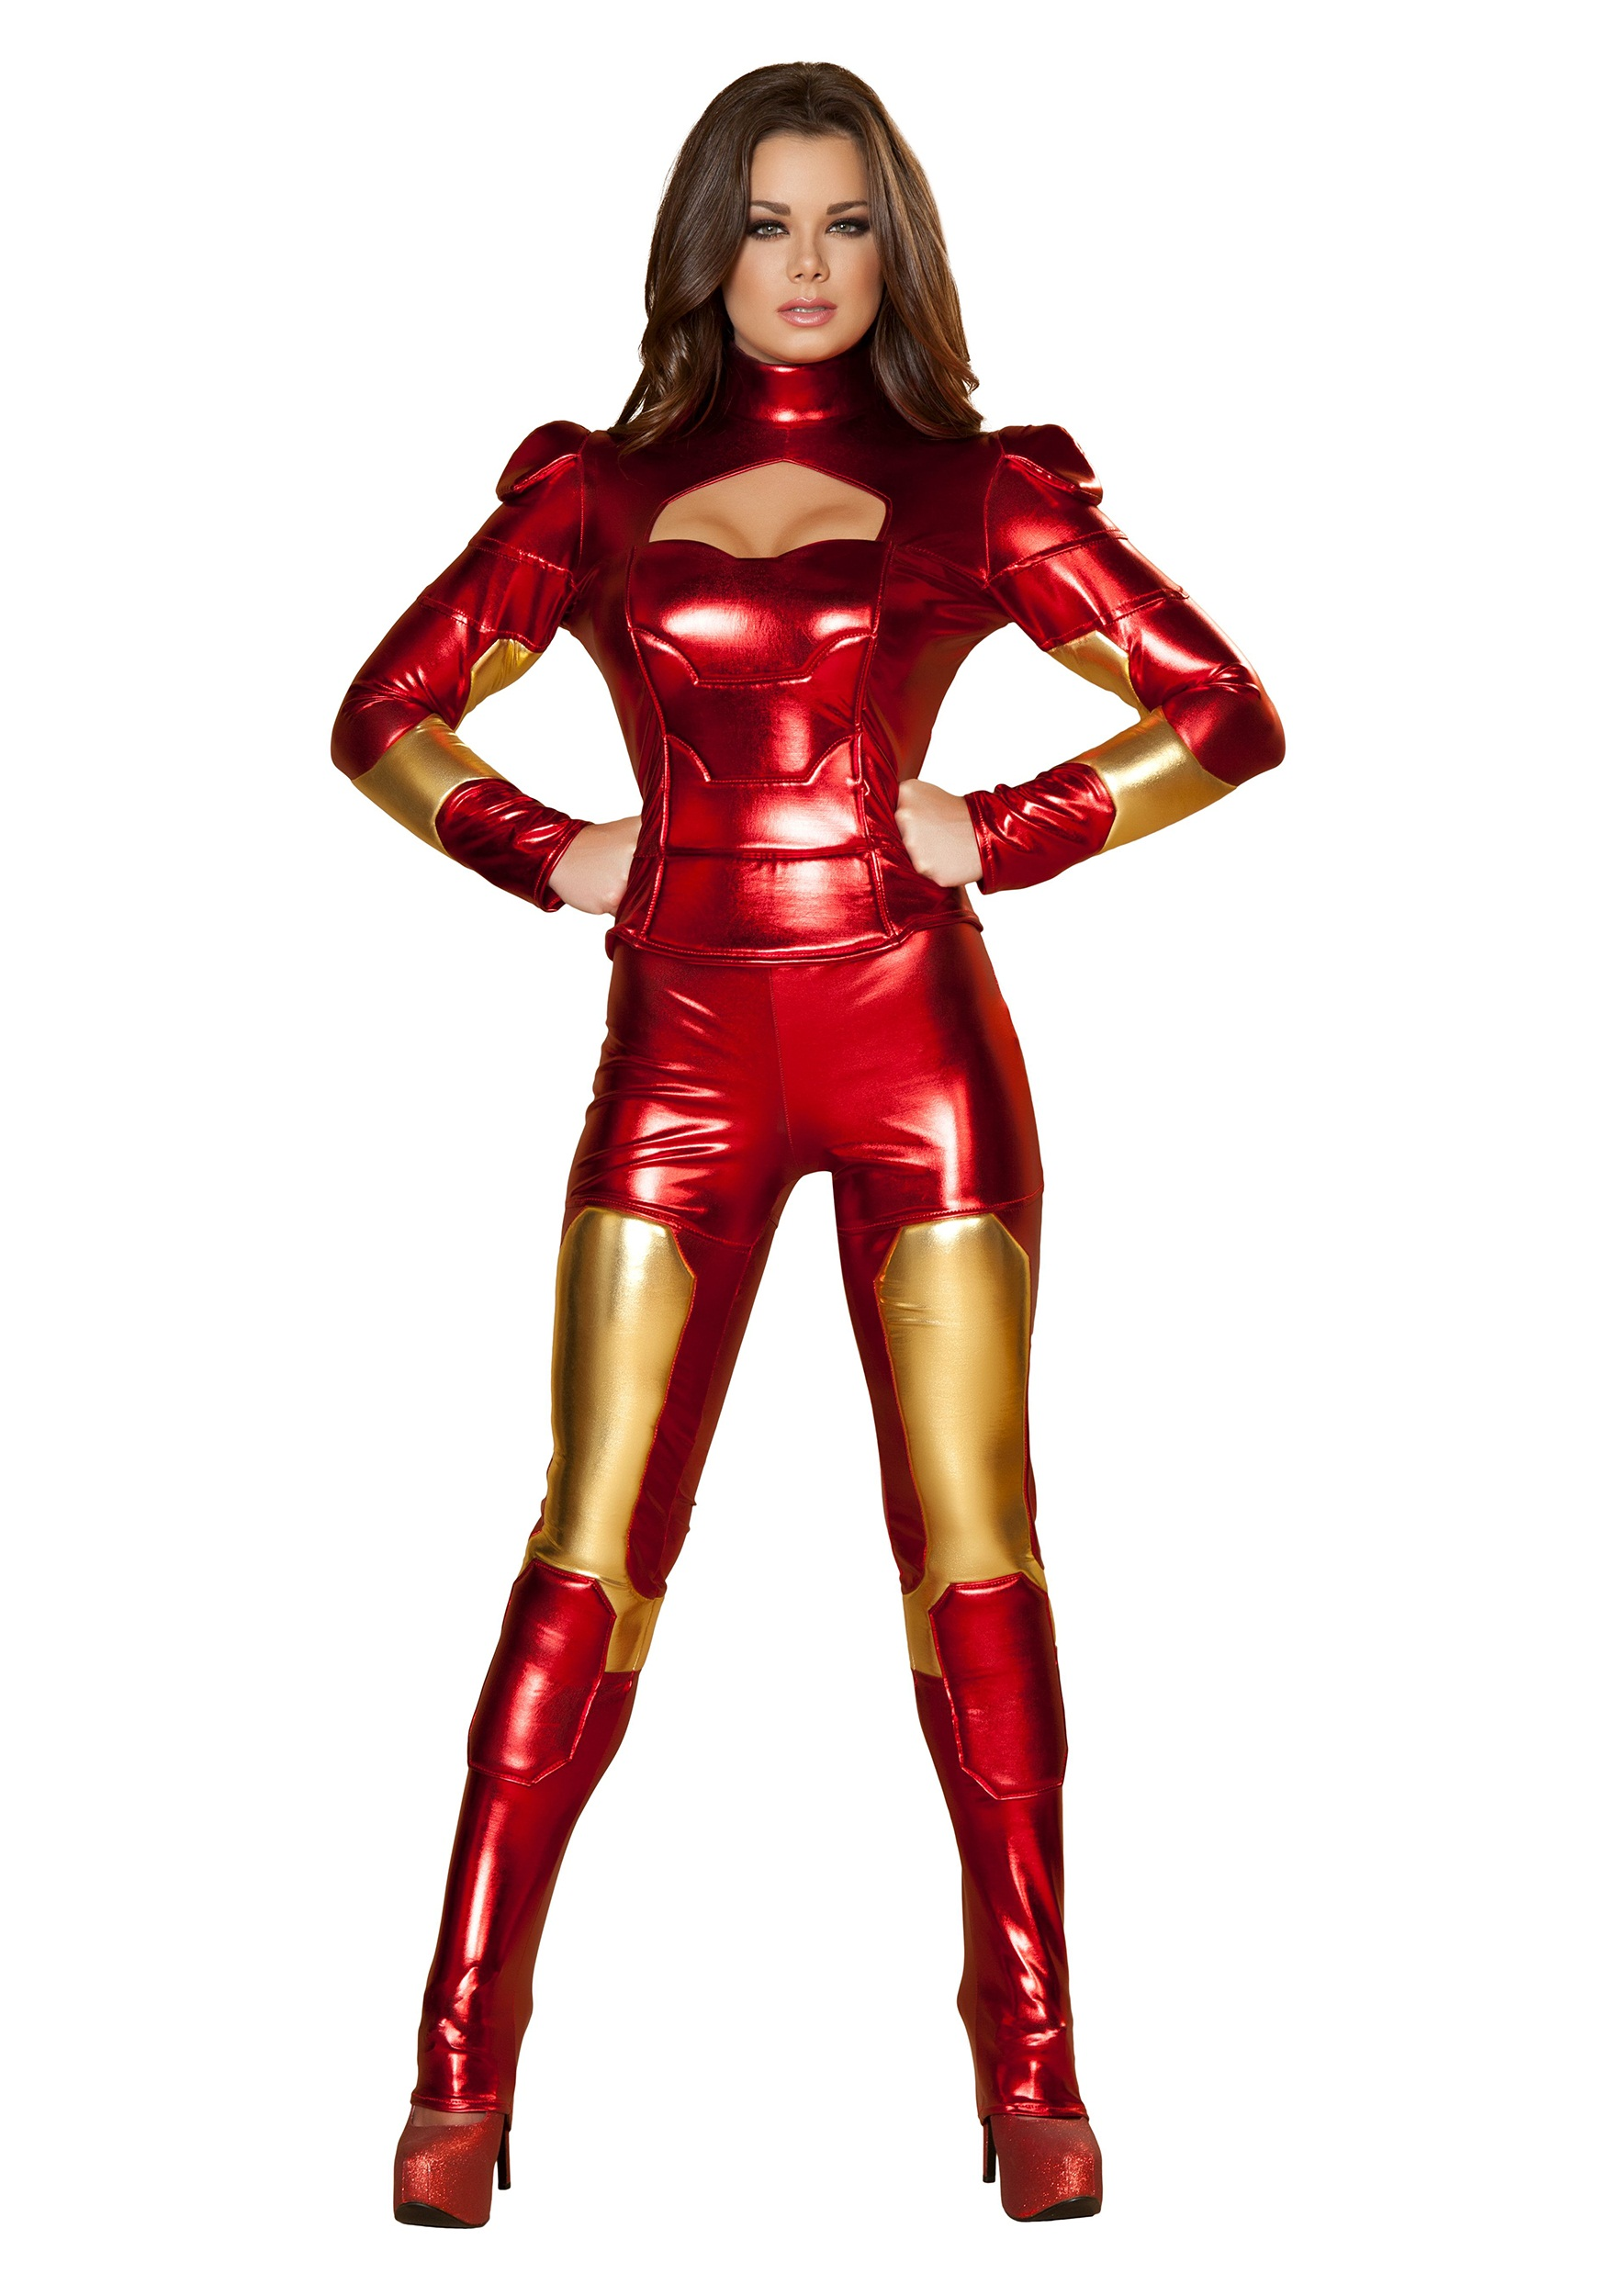 Womens Hot Metal Superhero Costume